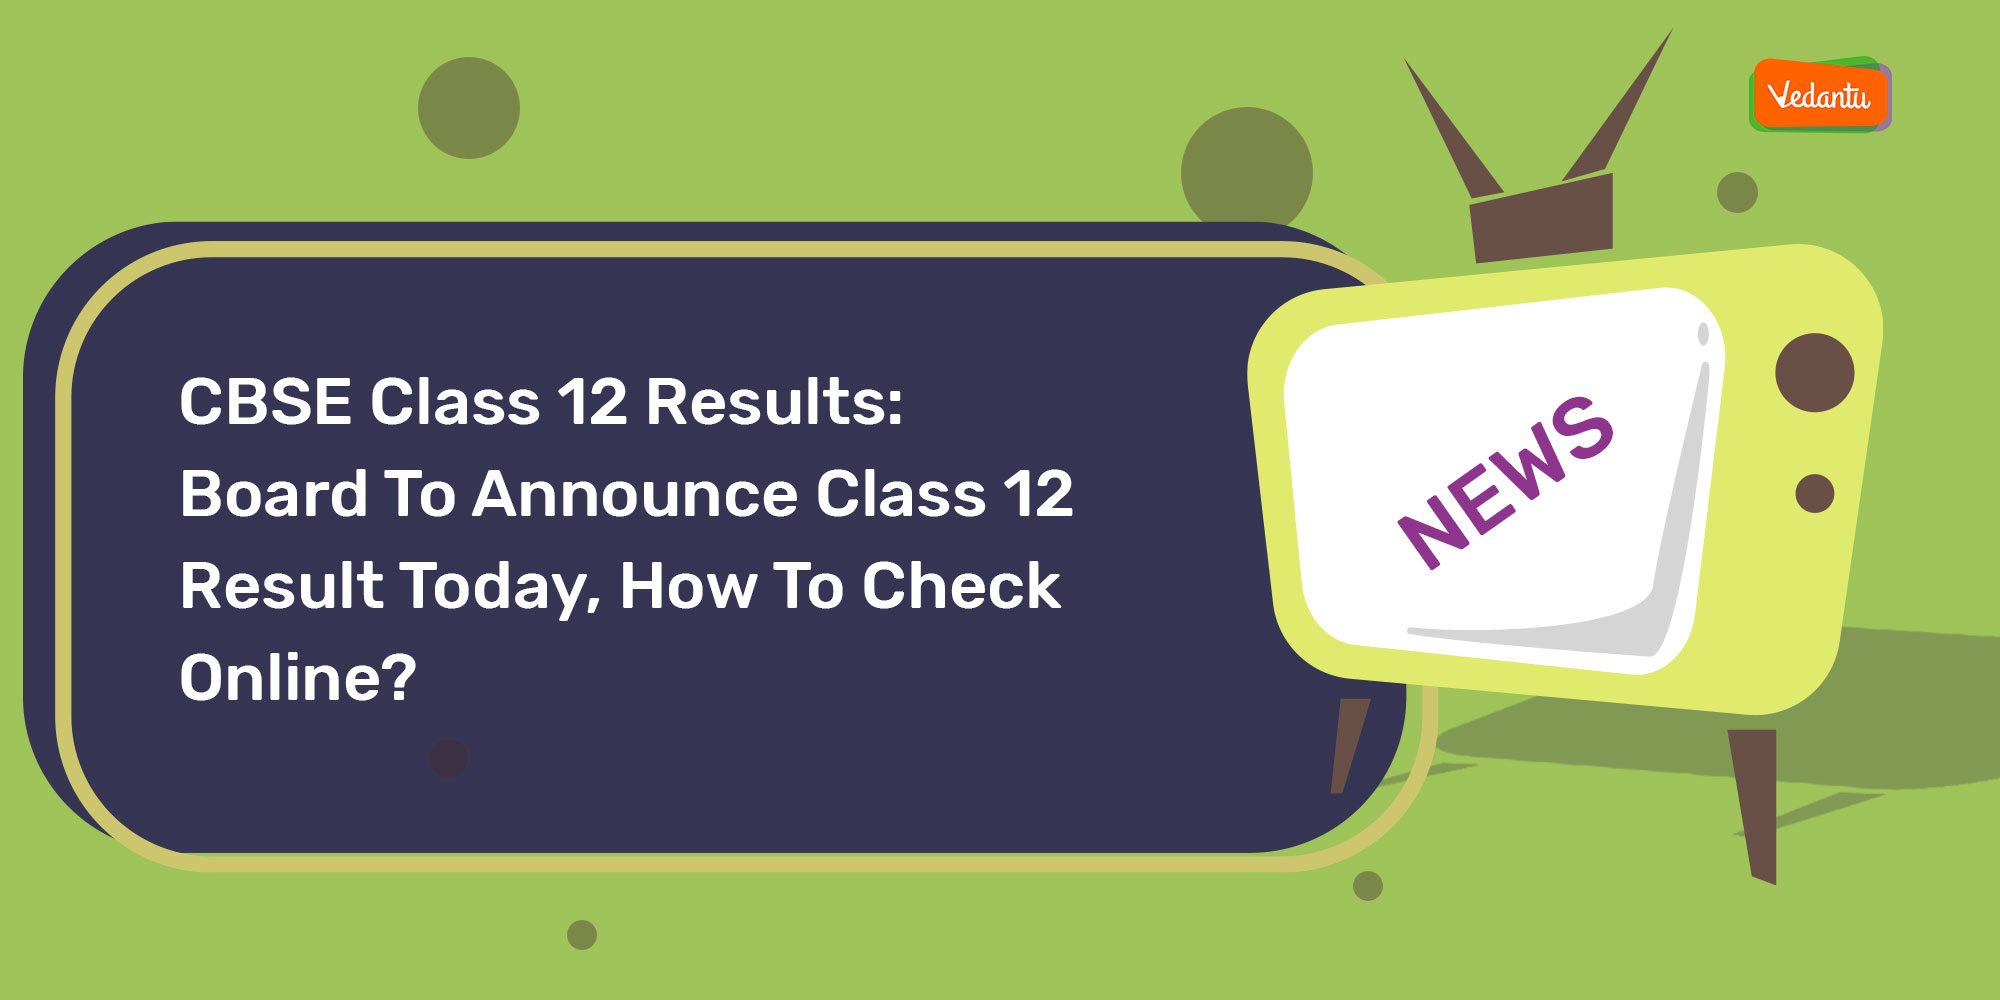 CBSE Class 12 Results: Board To Announce Class 12 Result Today, How To Check Online?